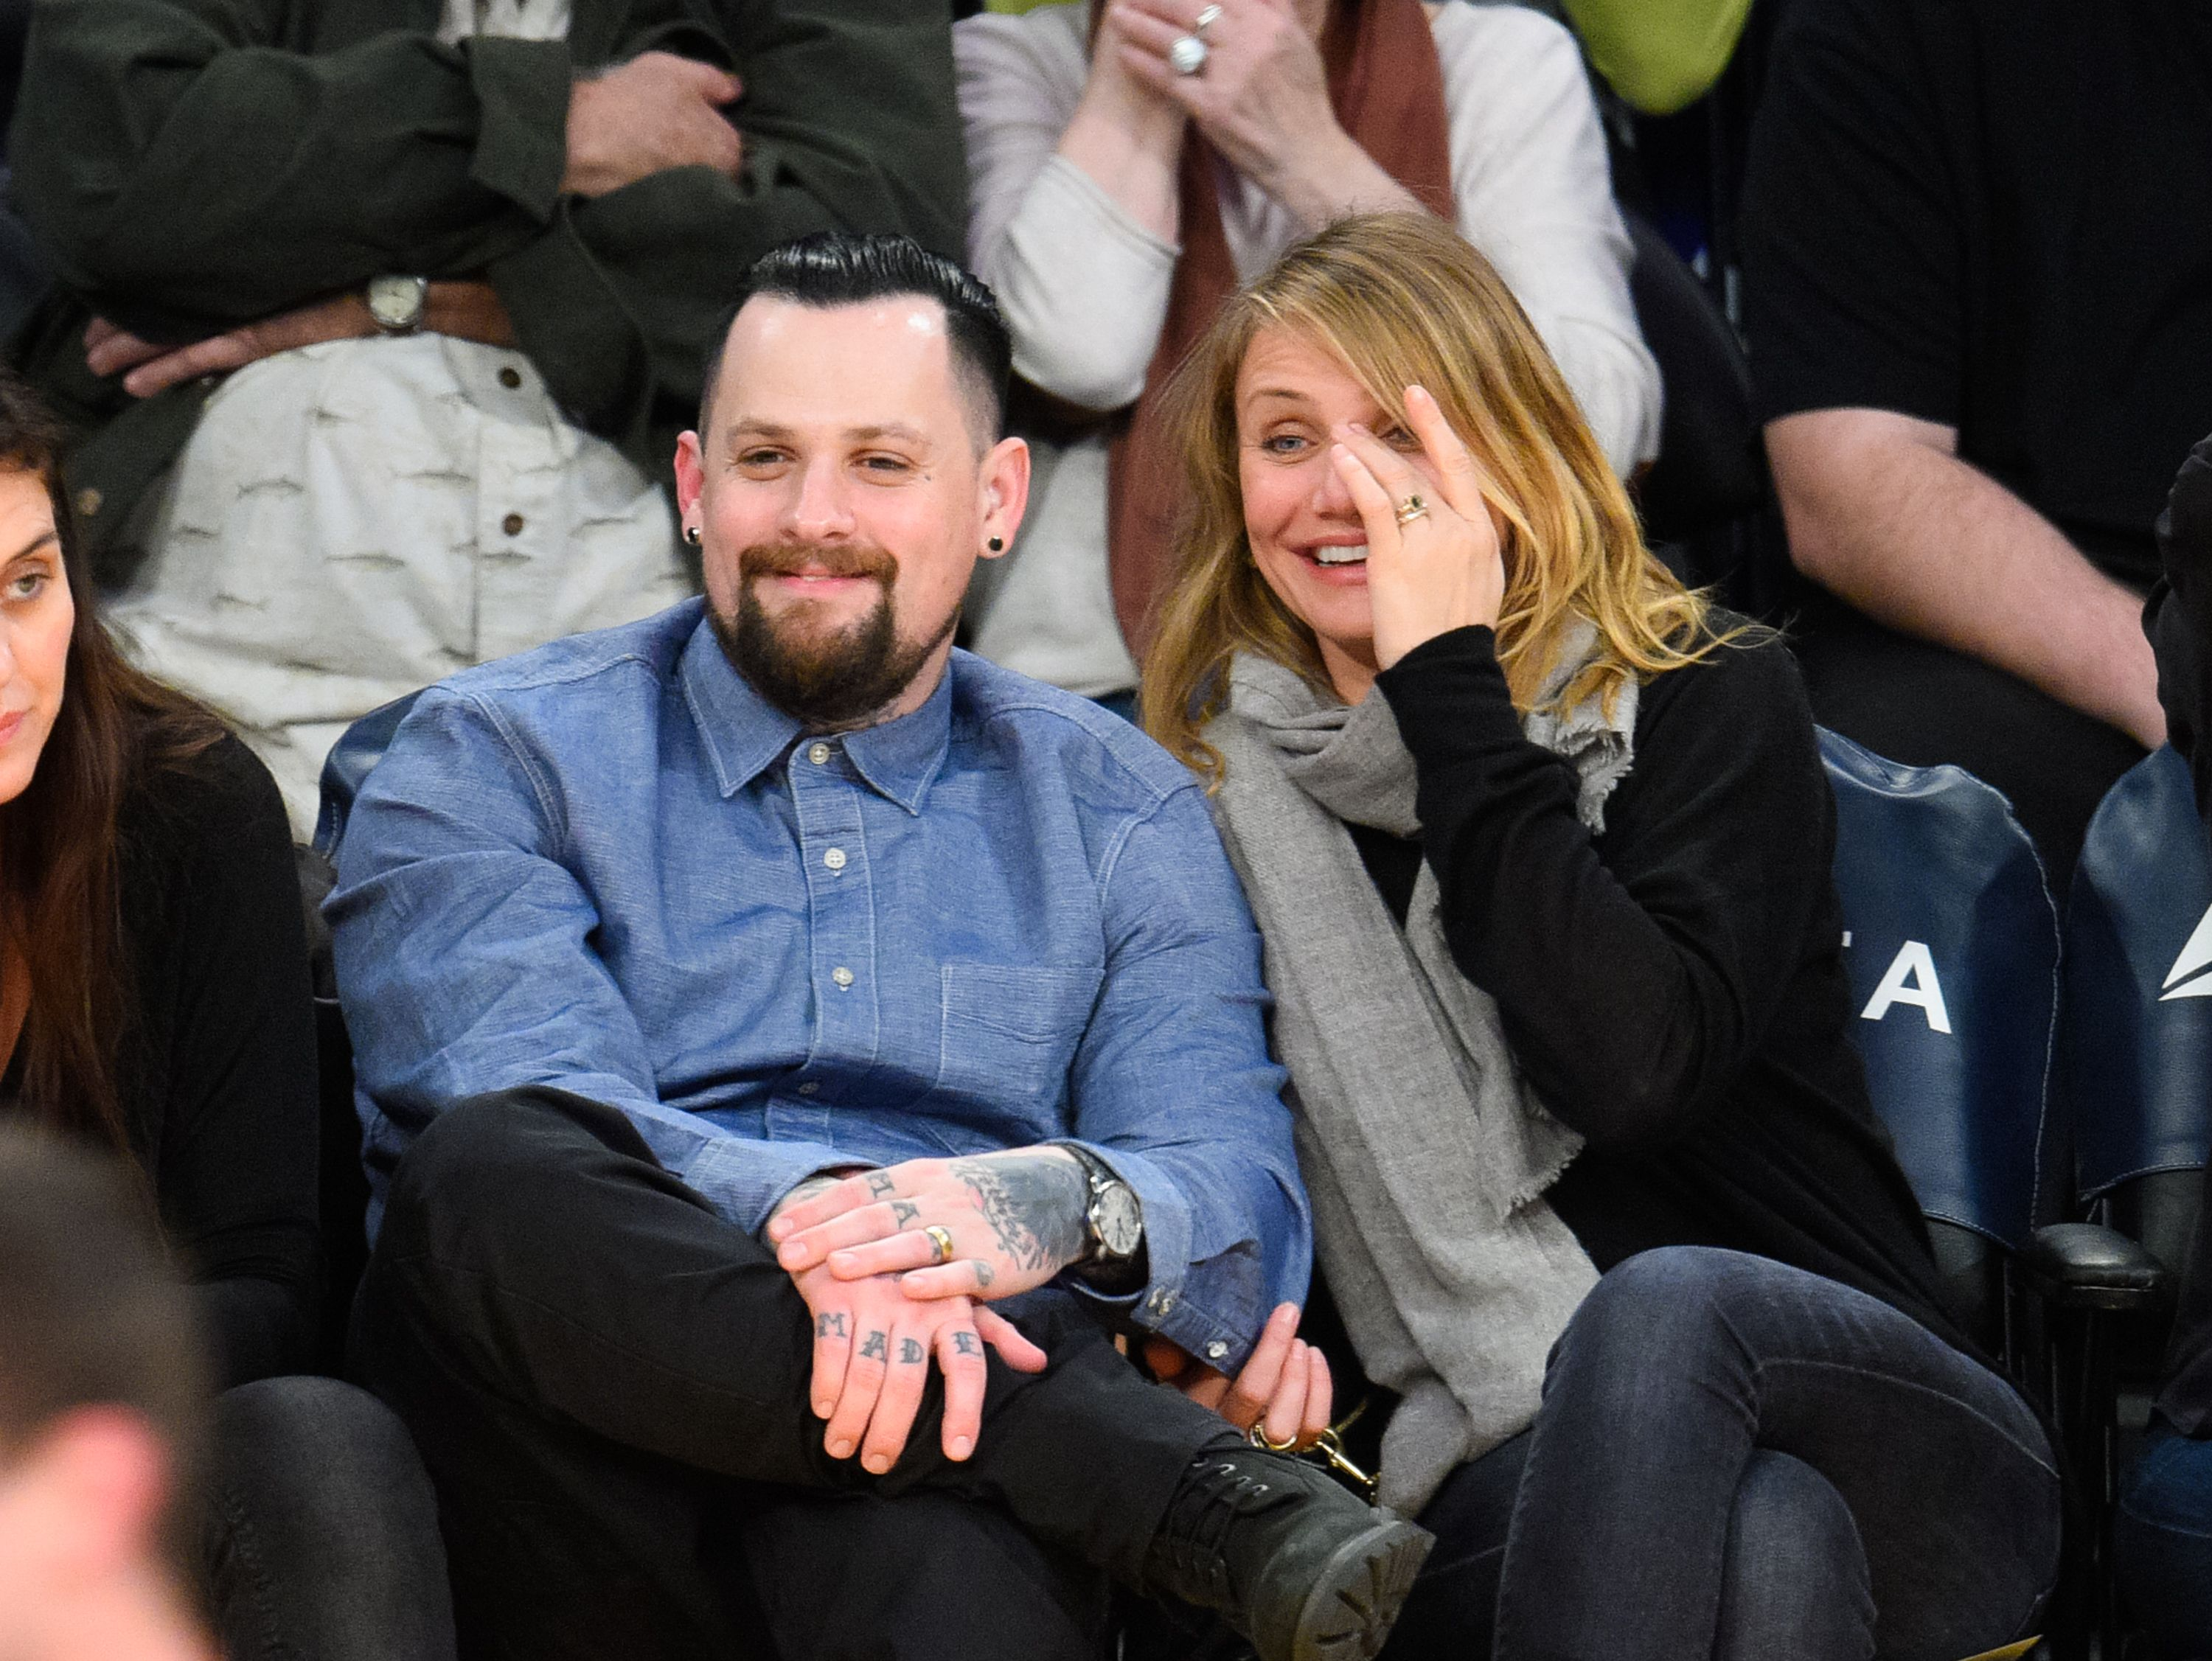 Benji Madden and Cameron Diaz at a basketball game held at Staples Center on January 27, 2015, in Los Angeles, California | Photo: Noel Vasquez/GC Images/Getty Images